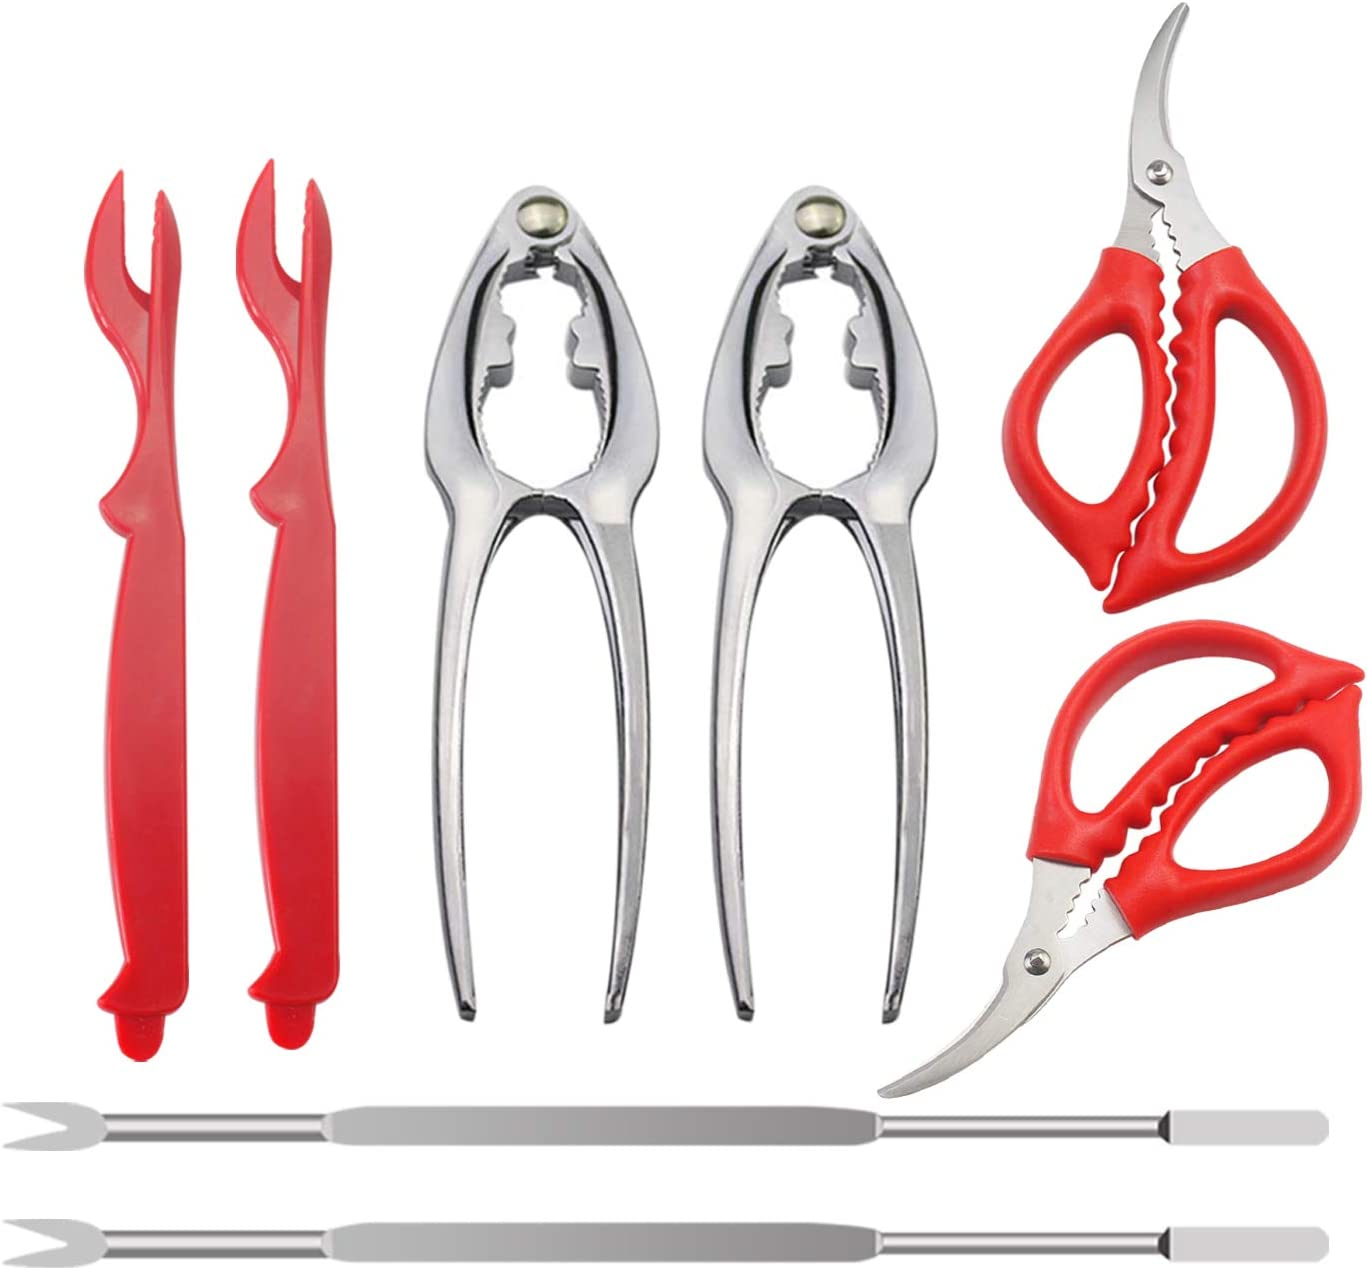 WeiMeet Seafood Tools Nutcrackers Set Crab Lobster Crackers Tools including 2 Crab Crackers 2 Lobster Shellers 2 Forks and 2 Seafood Scissors(8 Pack)